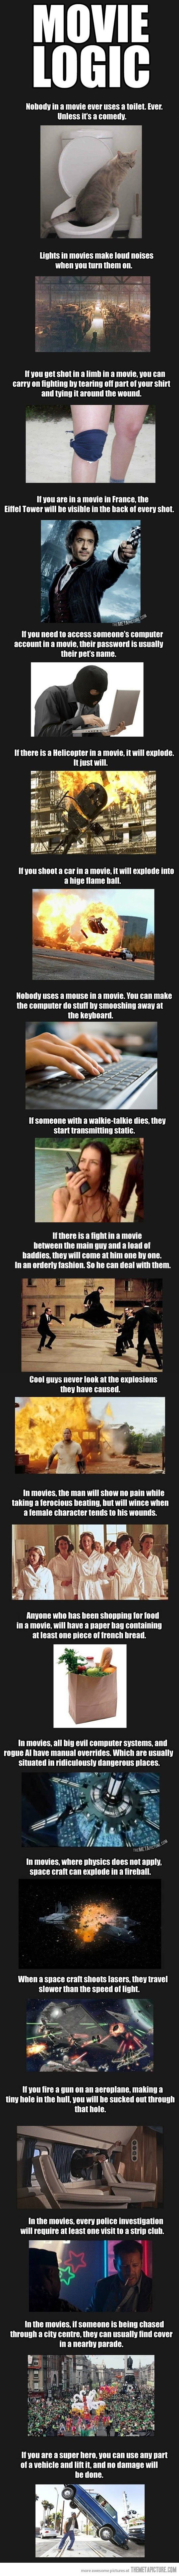 Several Movie Logics That Make You Think Again..